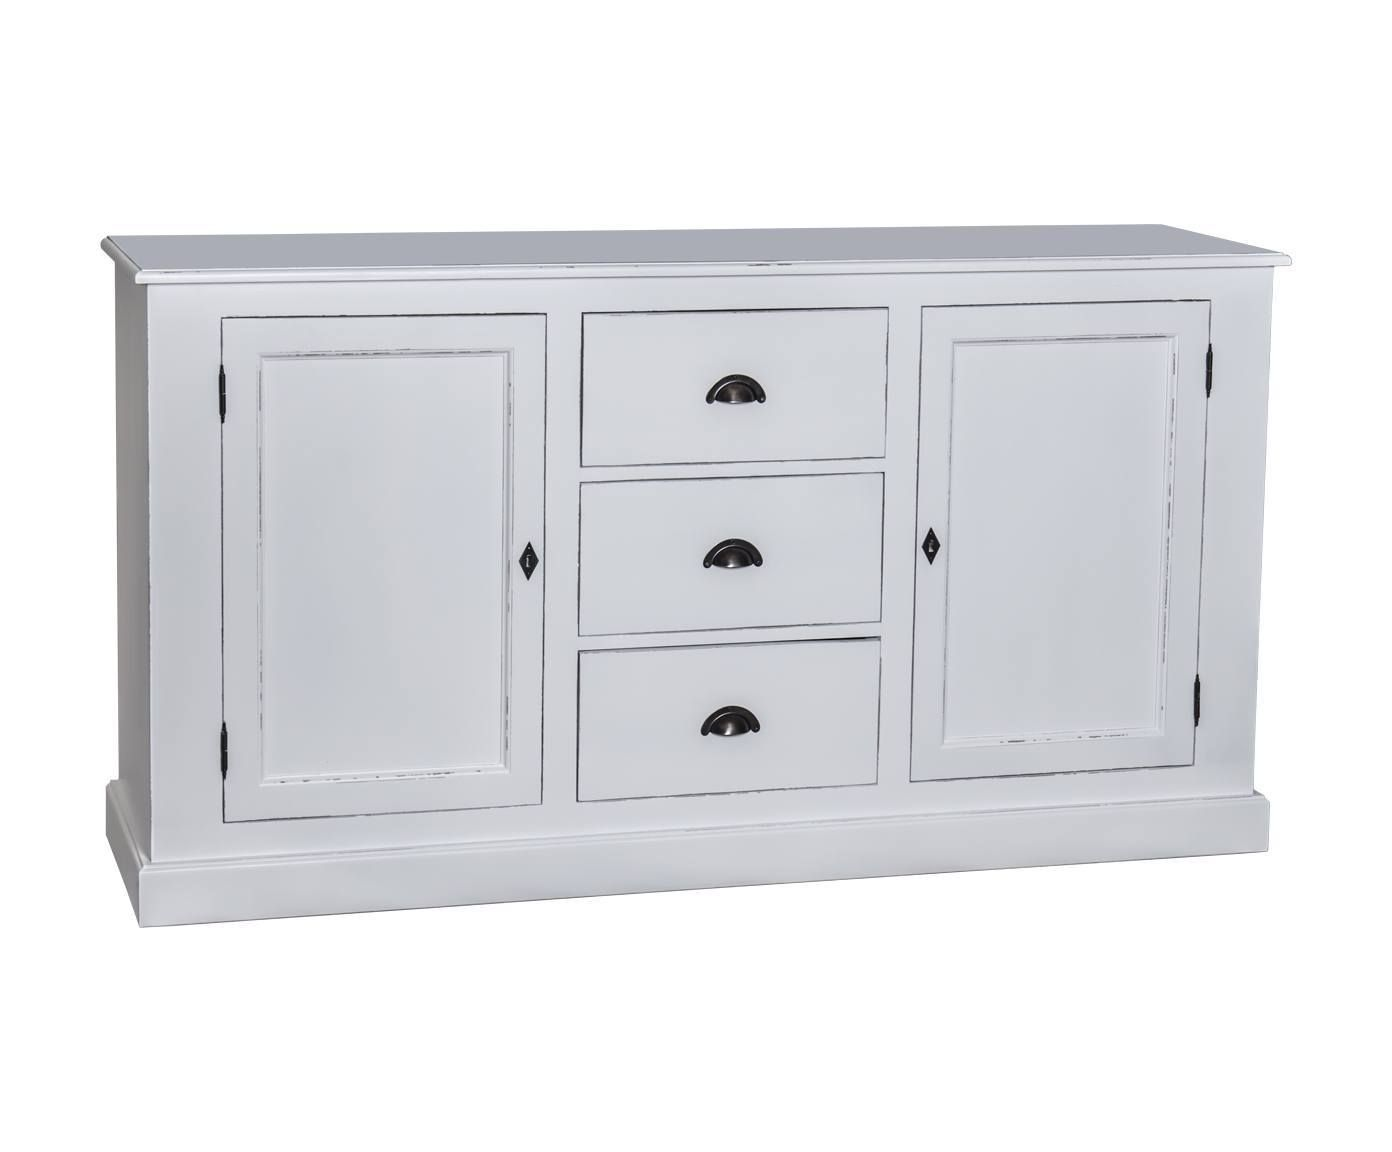 Mueble buffet de madera blanco westwing home living for Mueble buffet